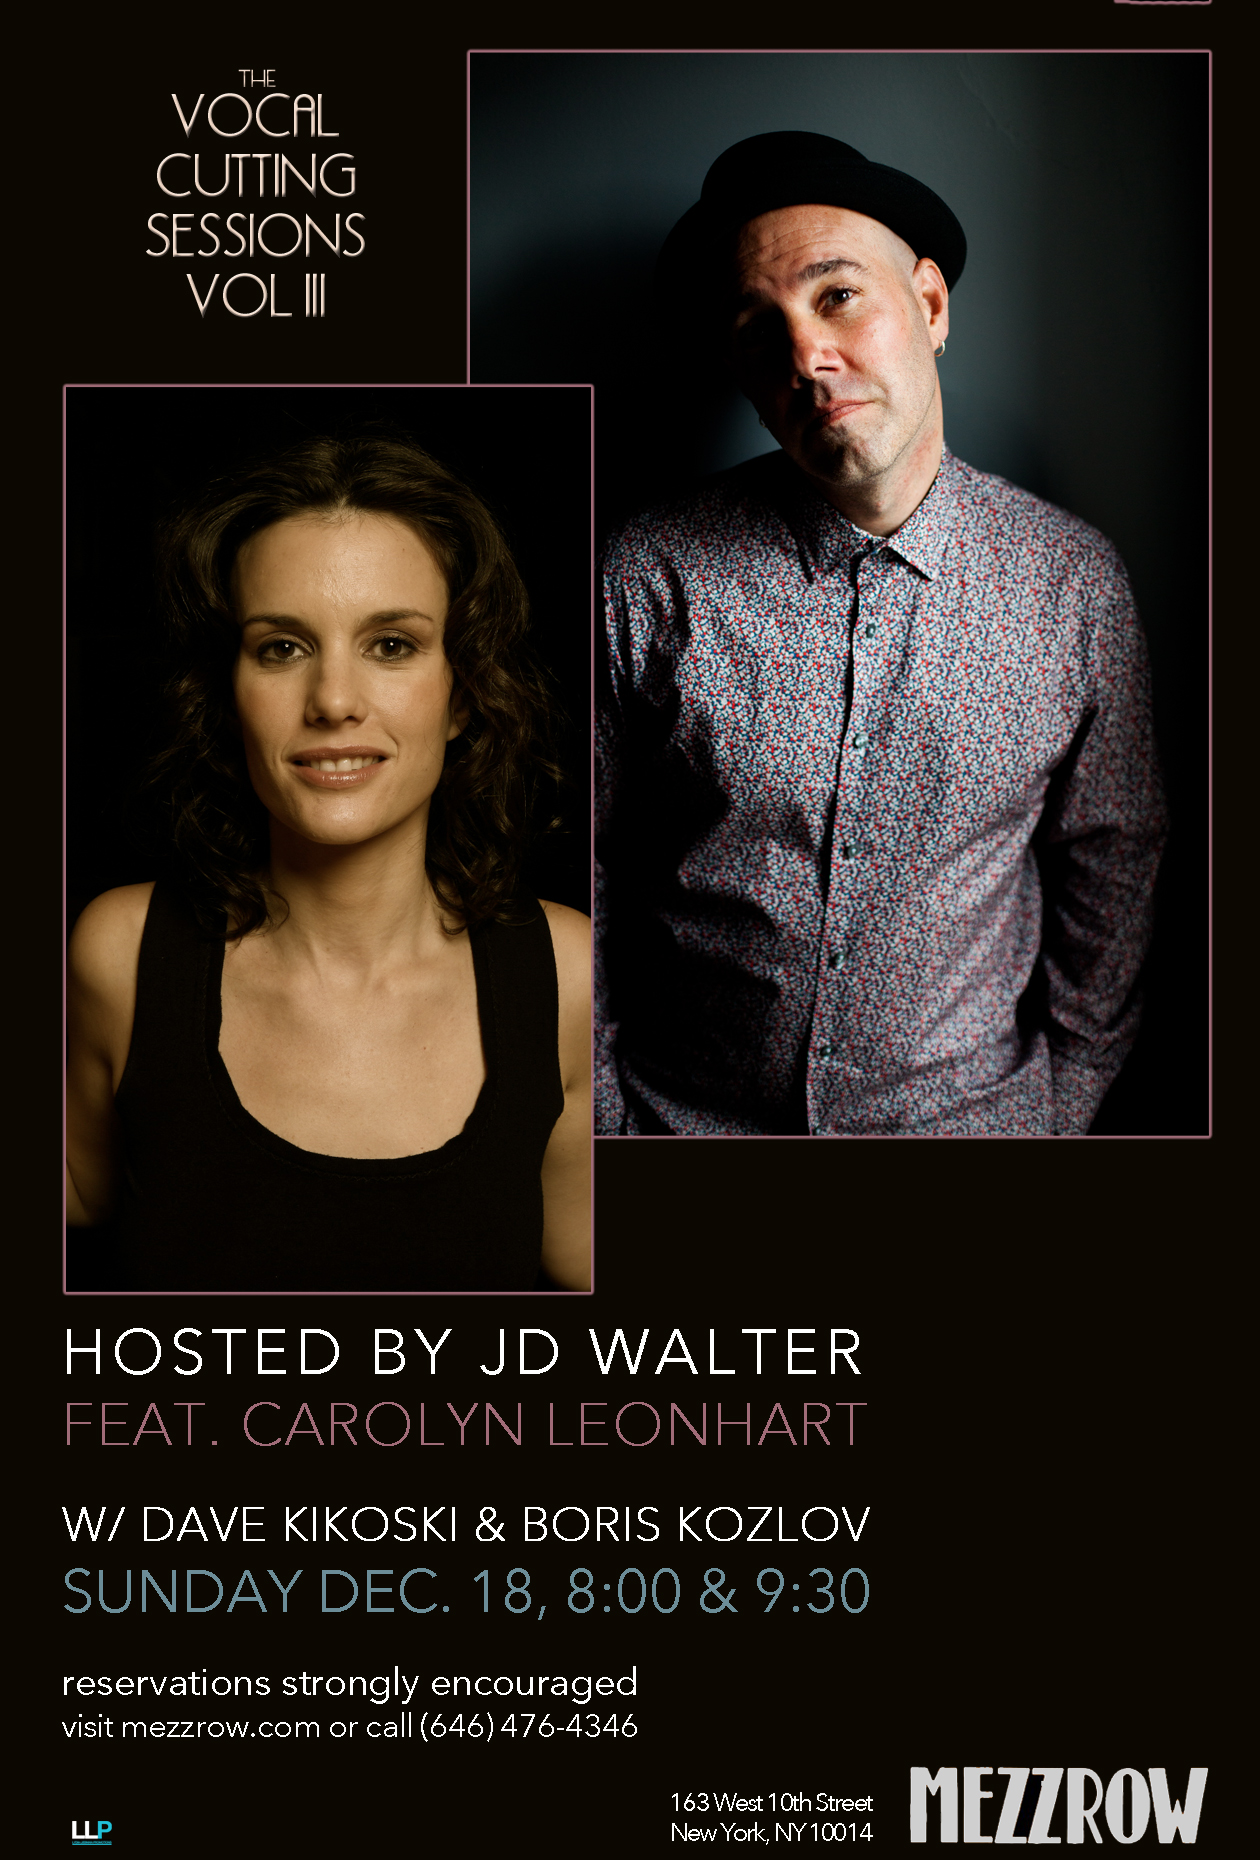 The Vocal Cutting Sessions Vol III Hosted by JD Walter, featuring Carolyn Leonhart at Mezzrow